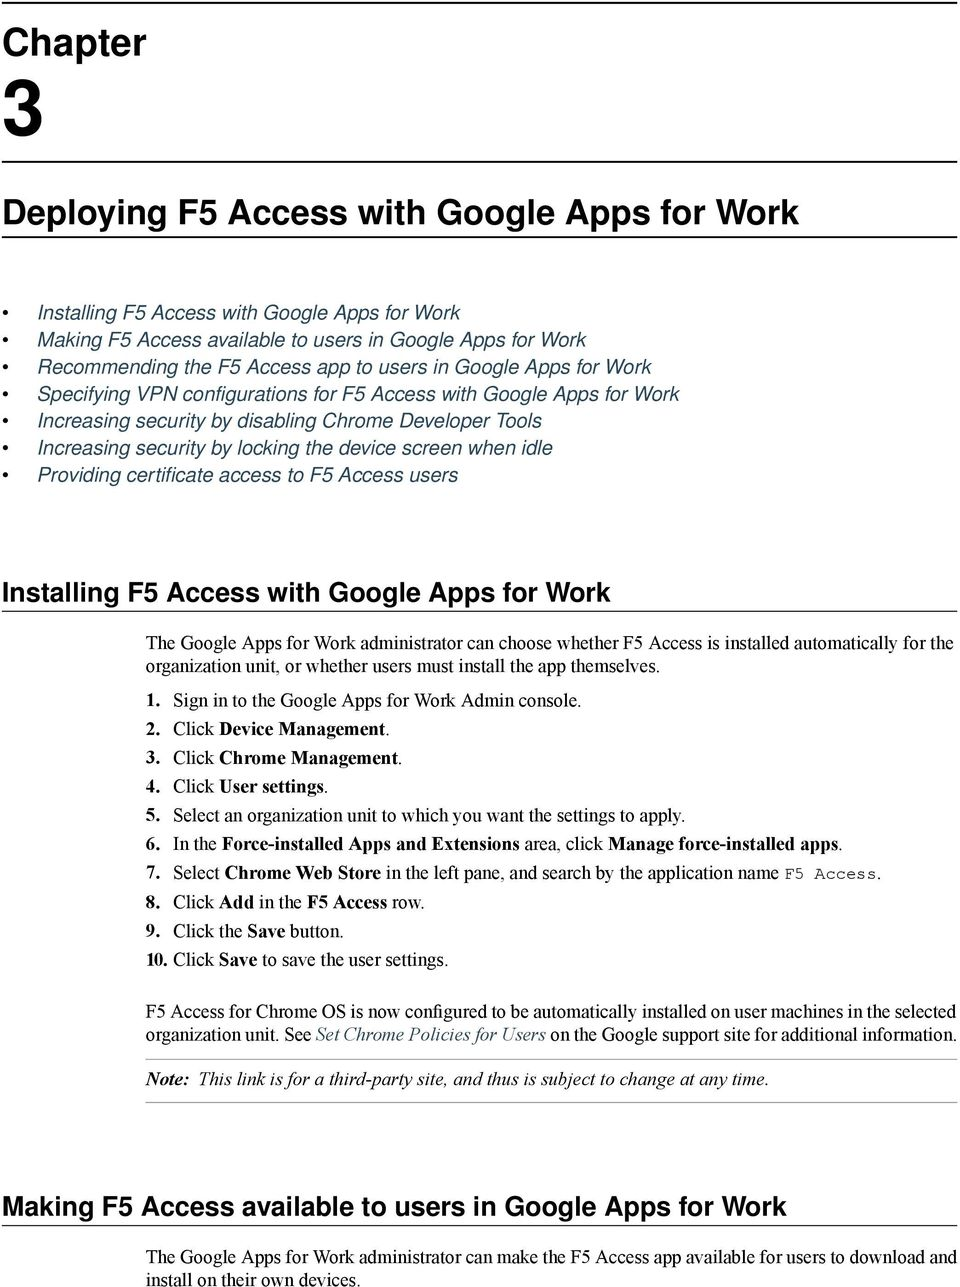 BIG-IP Access Policy Manager and F5 Access for Chrome OS v - PDF